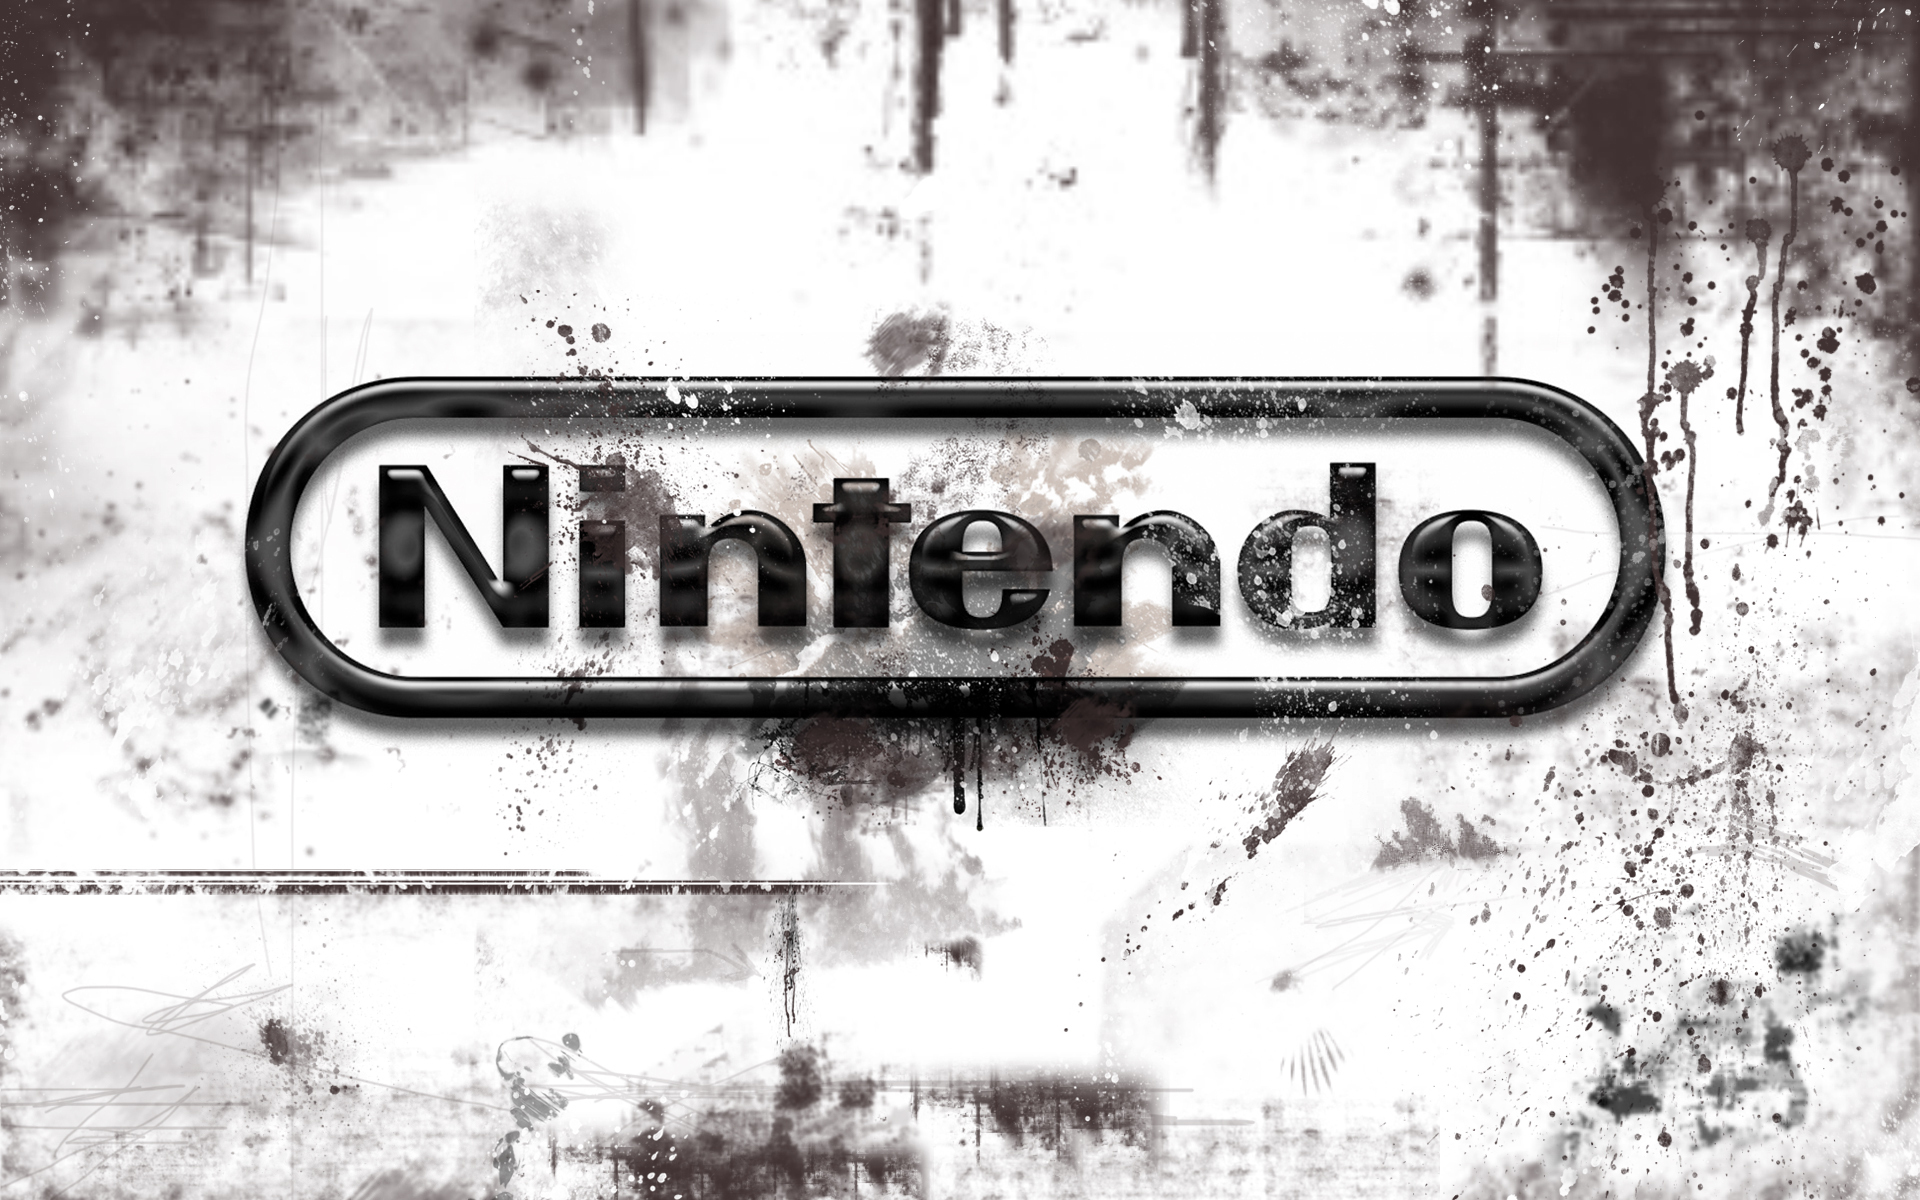 Used Wii U Consoles Allow Buyer to Re-Download Previous Owner's Games